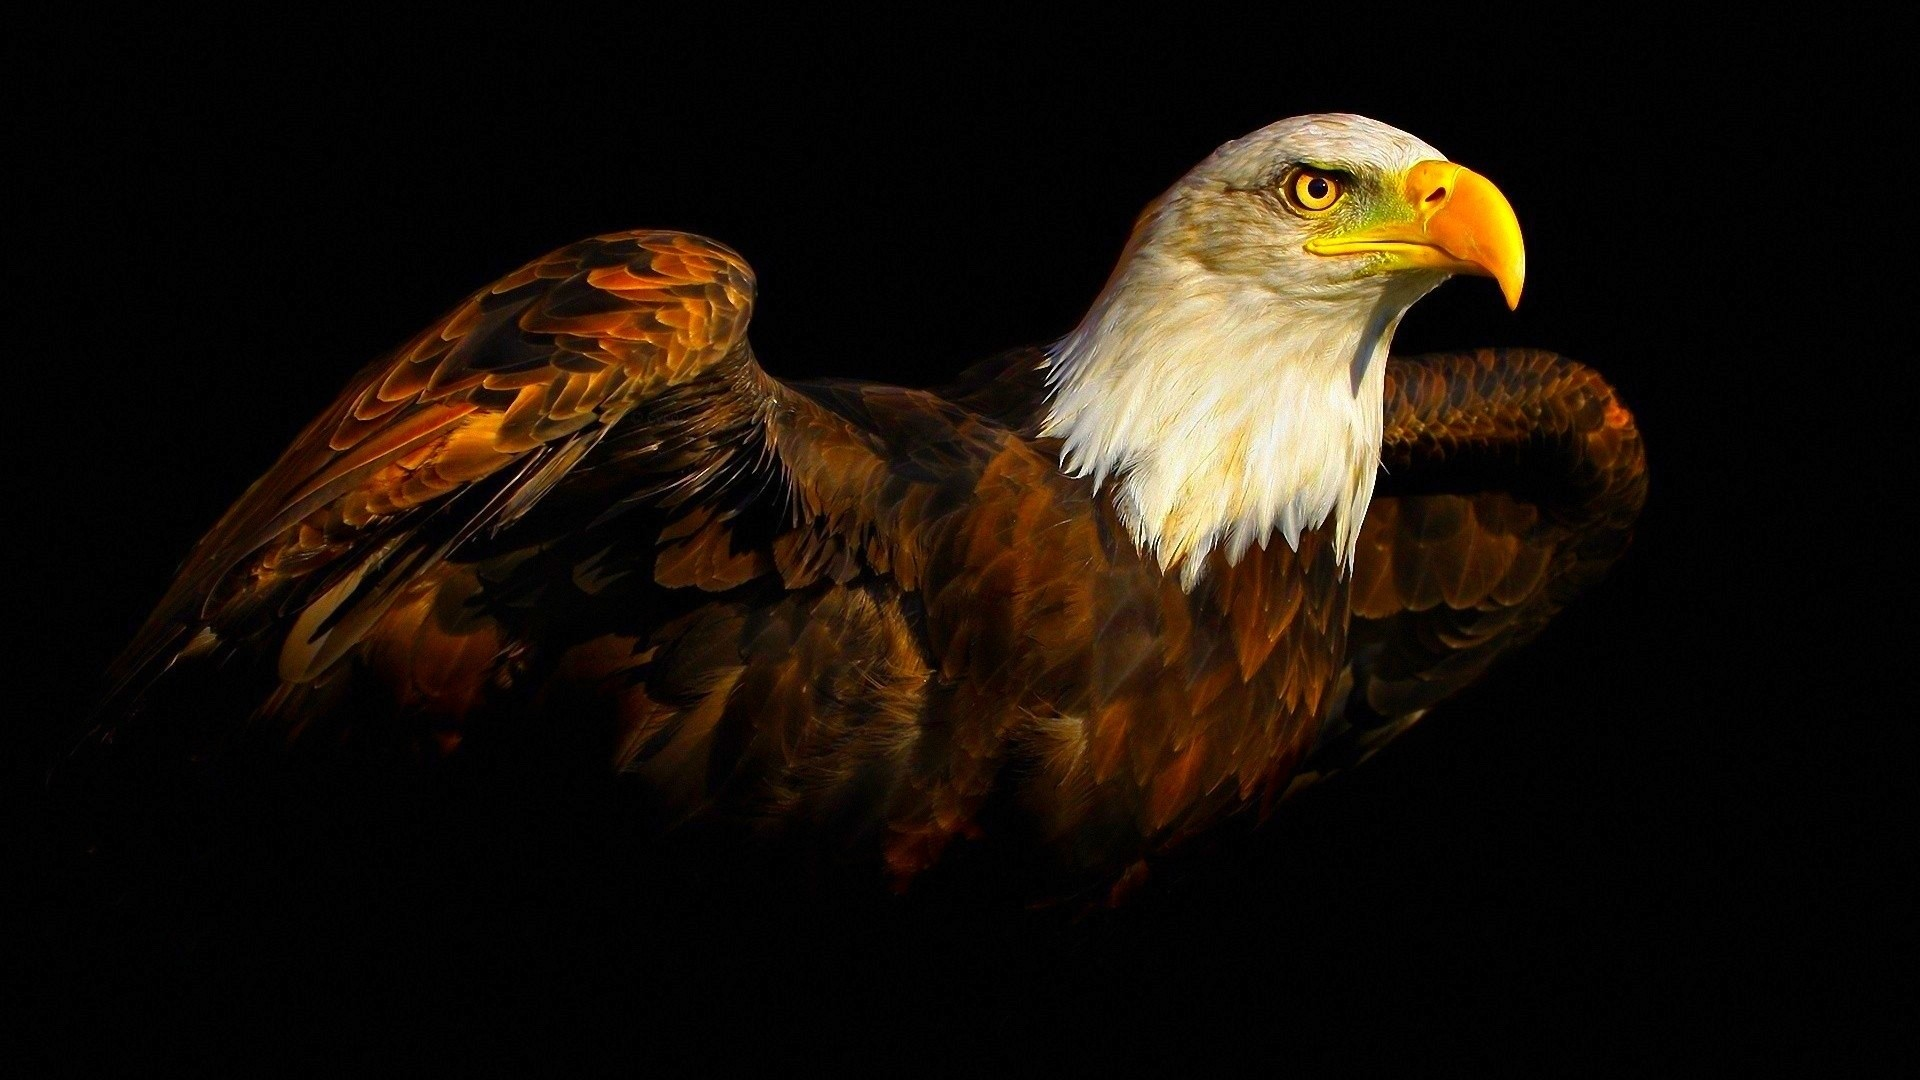 1920x1080 Eagle Wallpapers Free Download